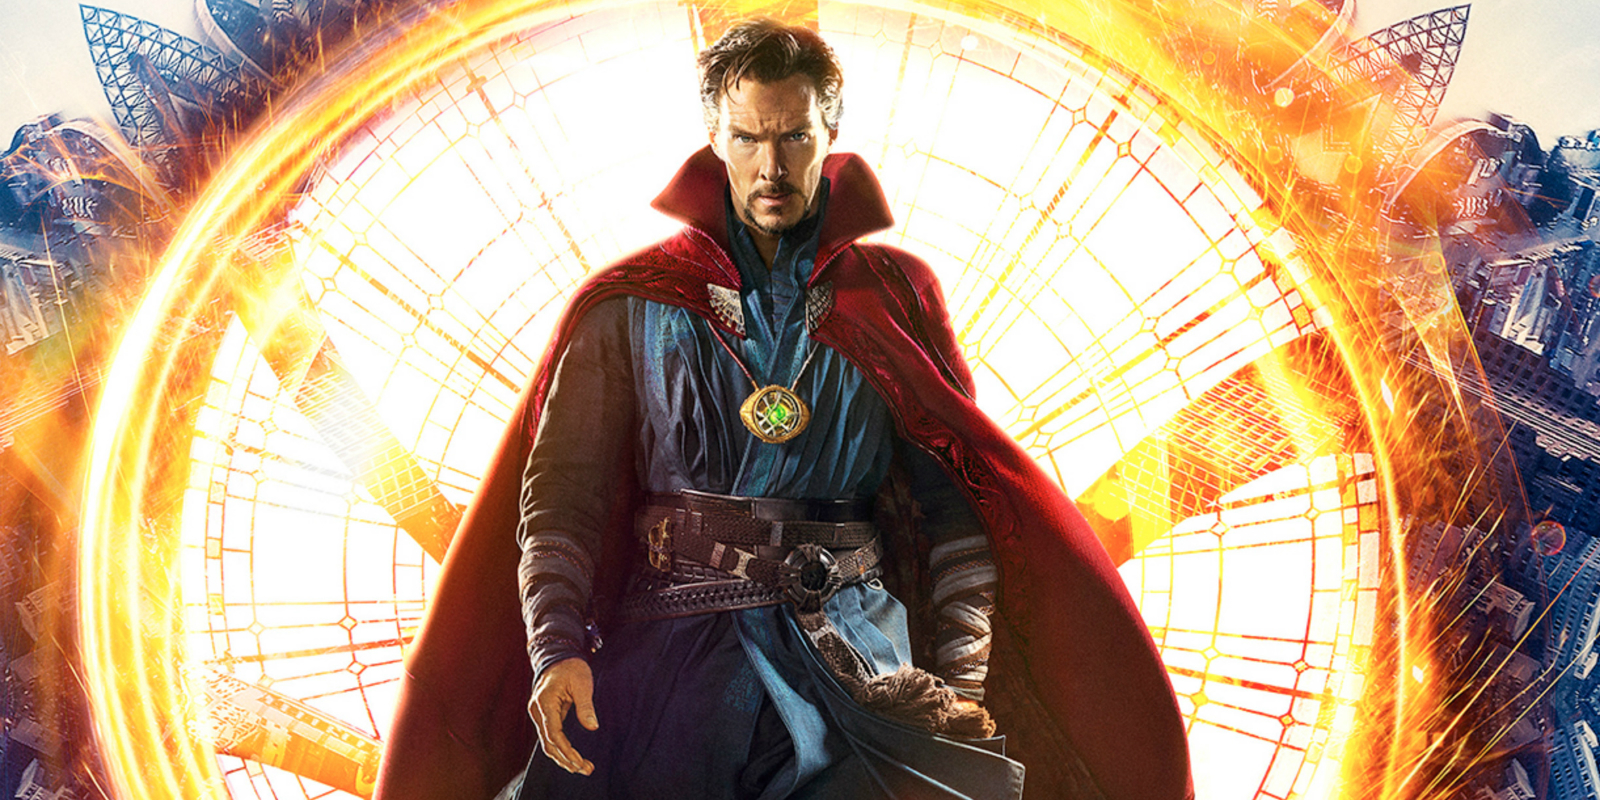 Doctor Strange review: 5 things we liked and 5 things we didn't